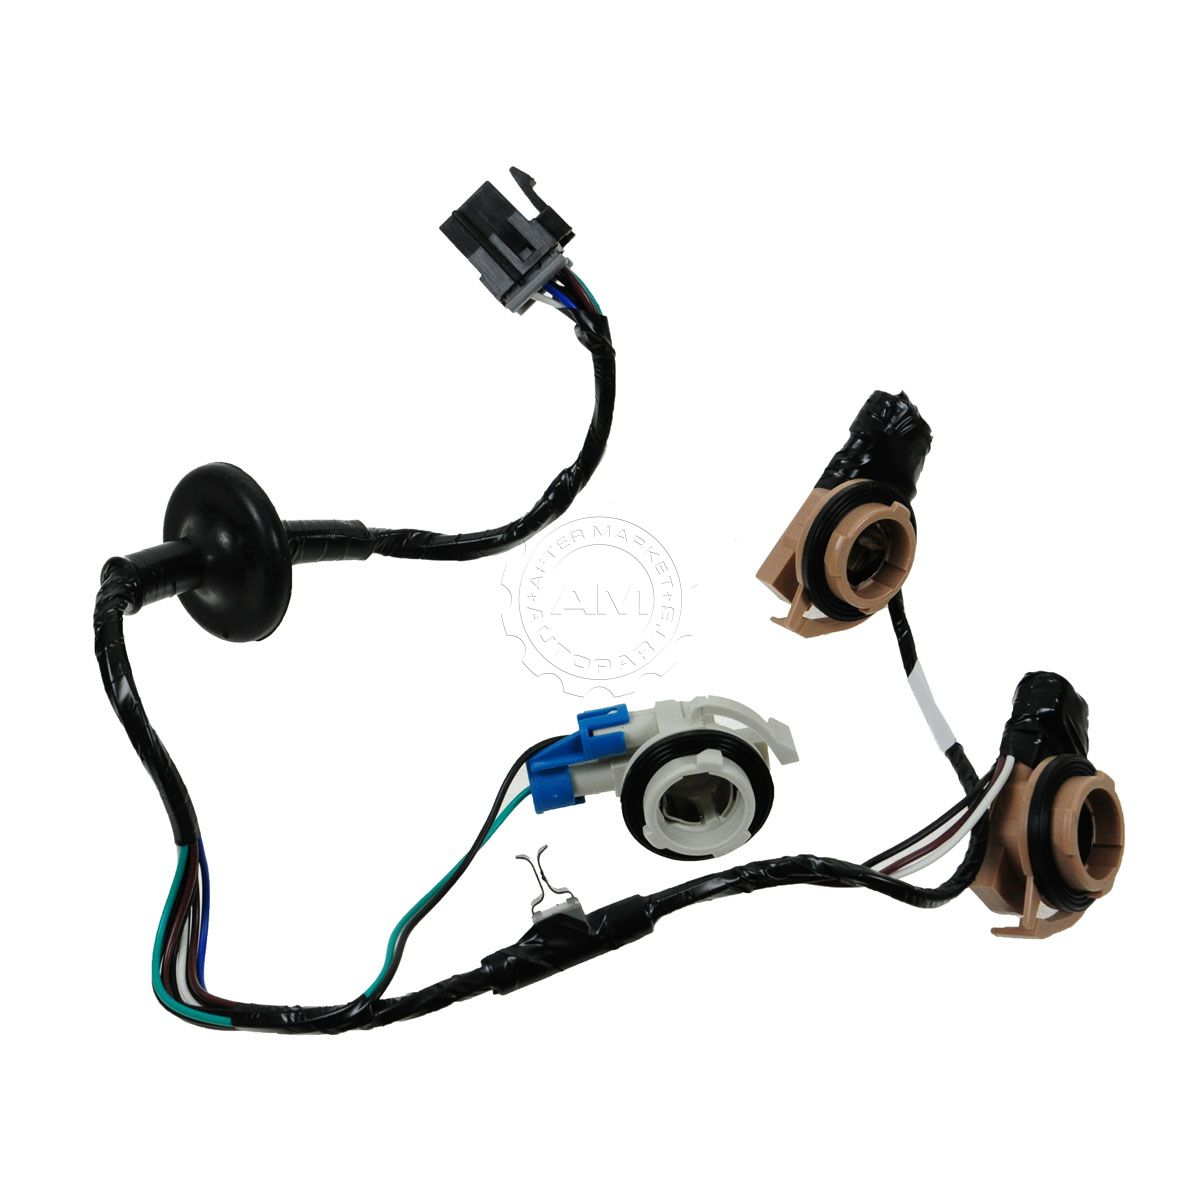 AM 3275376770 dorman 3 socket taillight taillamp wiring harness for chevy dorman wiring harness at edmiracle.co